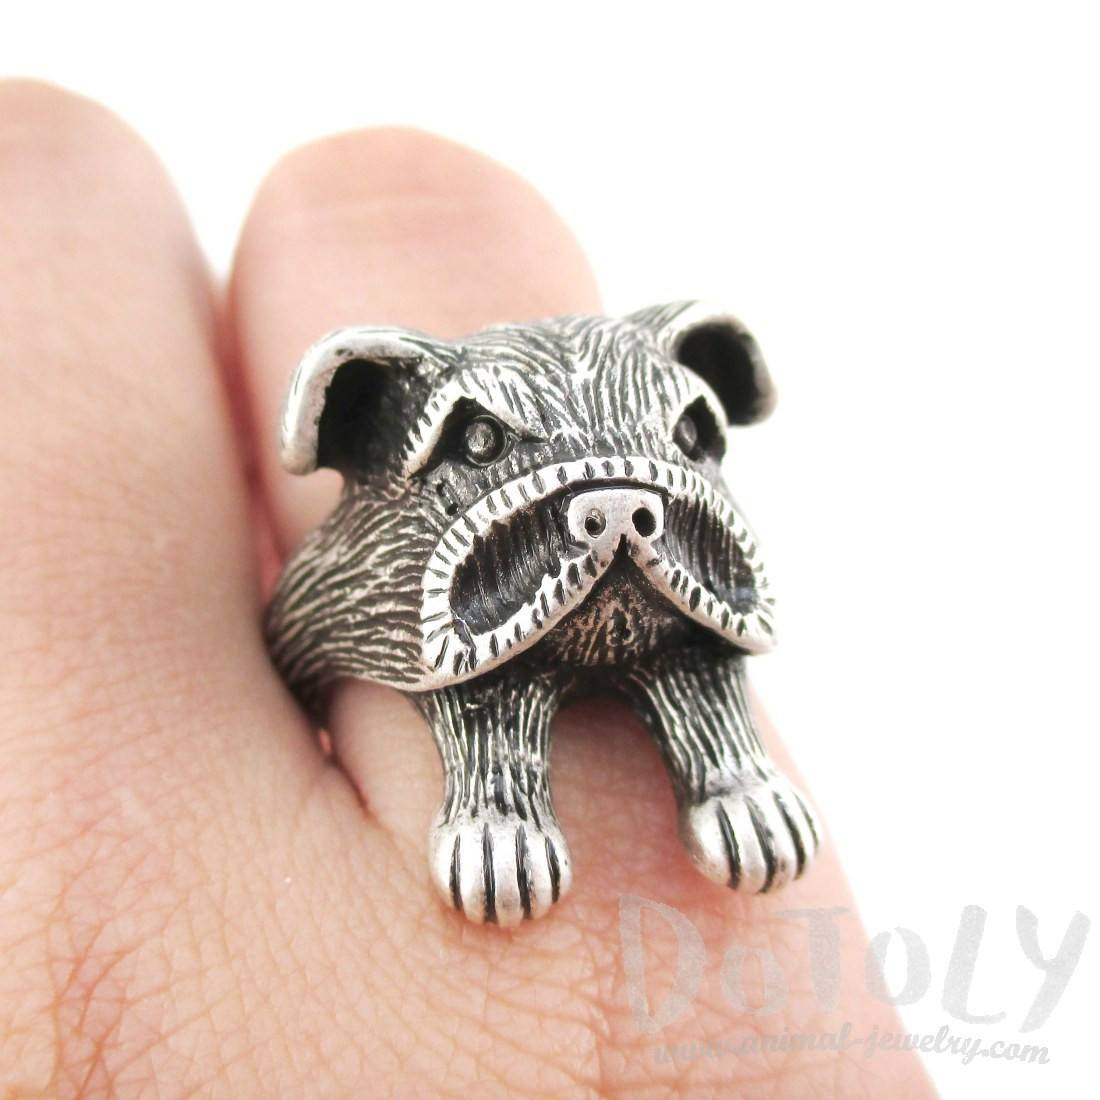 3D American Bulldog Head Shaped Animal Ring in Silver